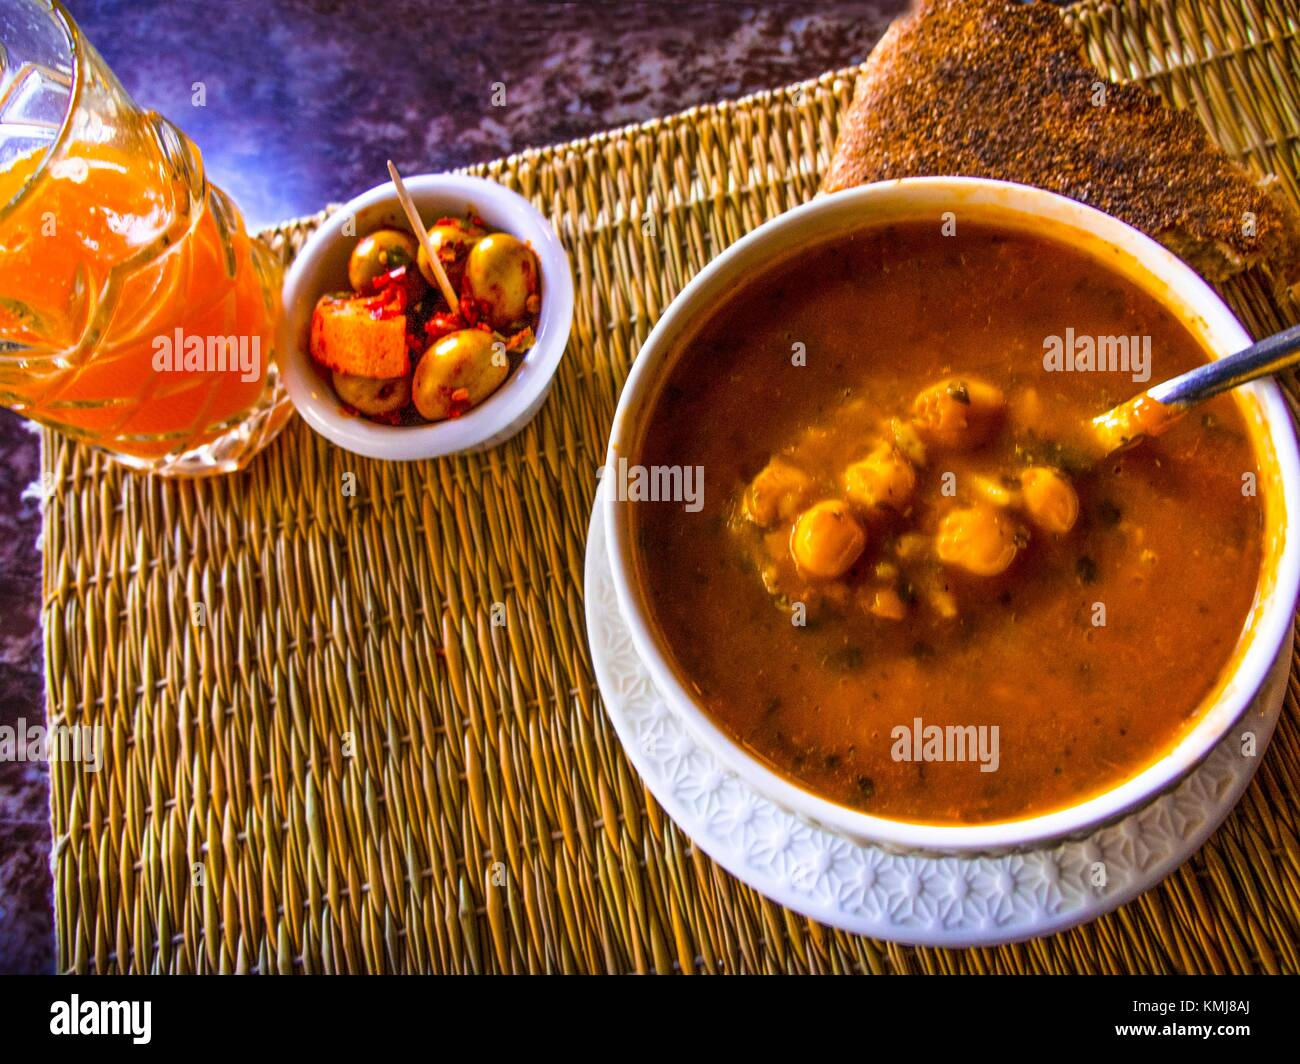 Morocco, Food, 'Ghrira' soup. Specialy made during the 'Ramadan'. - Stock Image